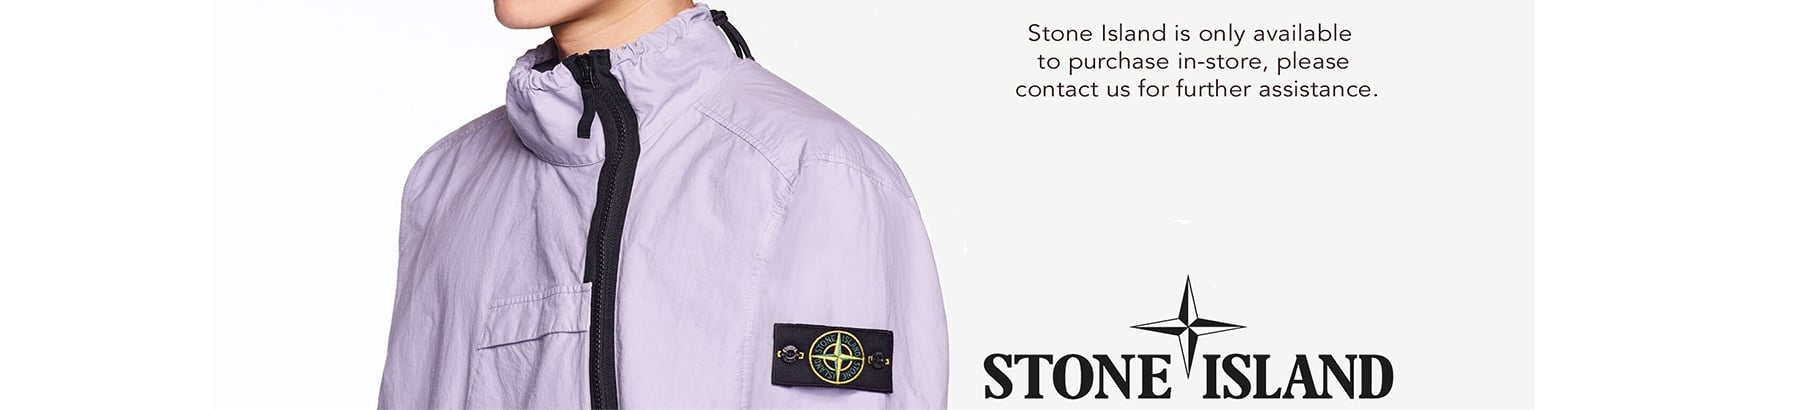 Stone Island Only Available In-Store